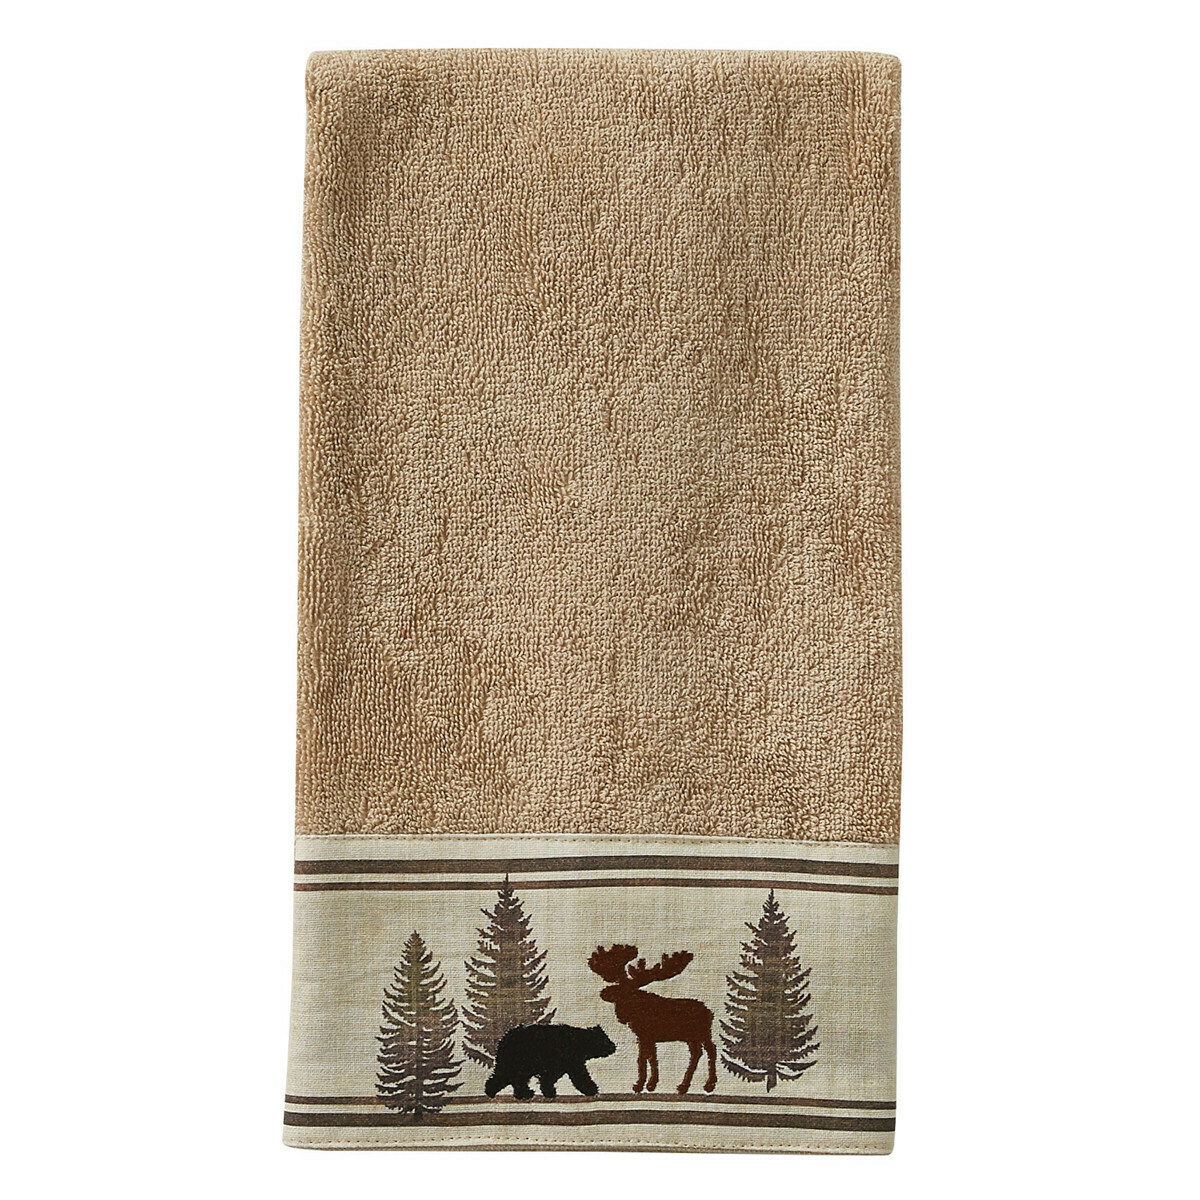 Black Forest Hand Towel